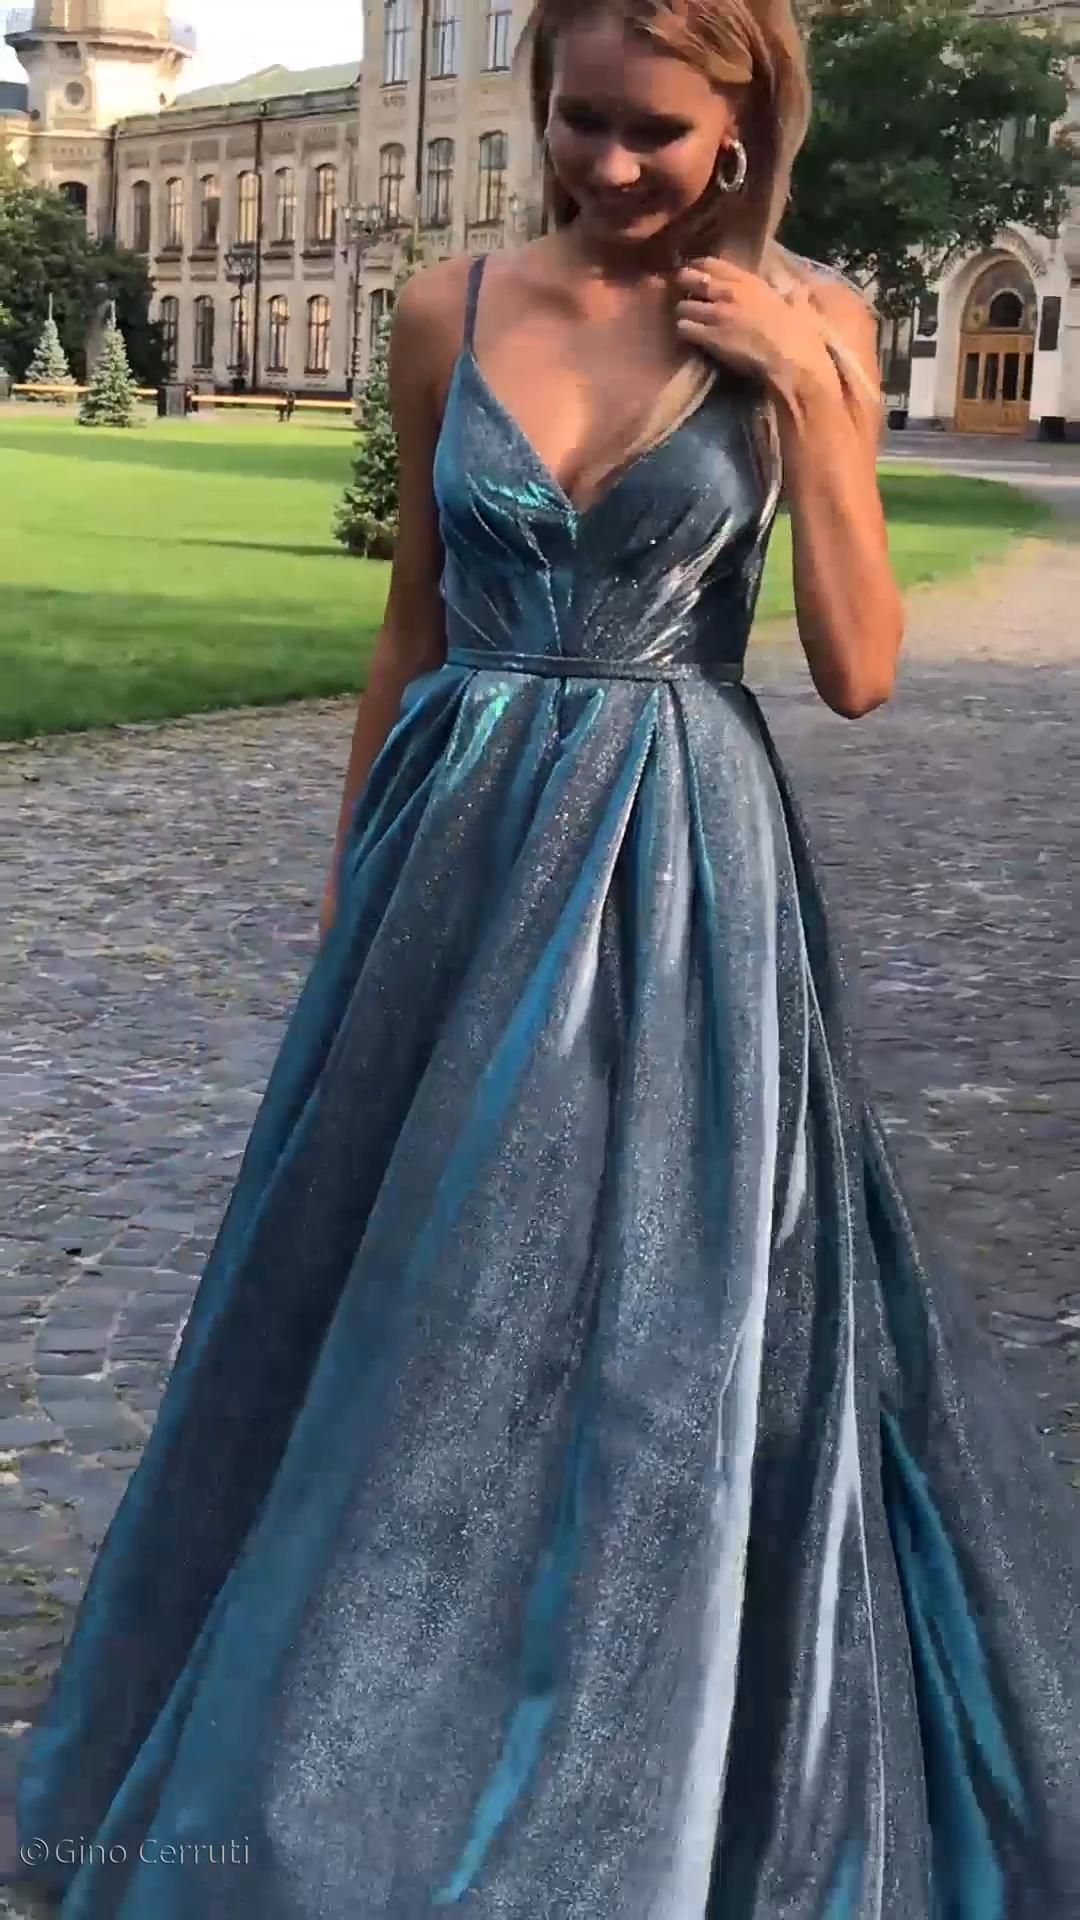 The prom dress to beat all prom dresses! Make a statement and turn some heads in this shiny, sparkly ballgown 😍✨ #promdress